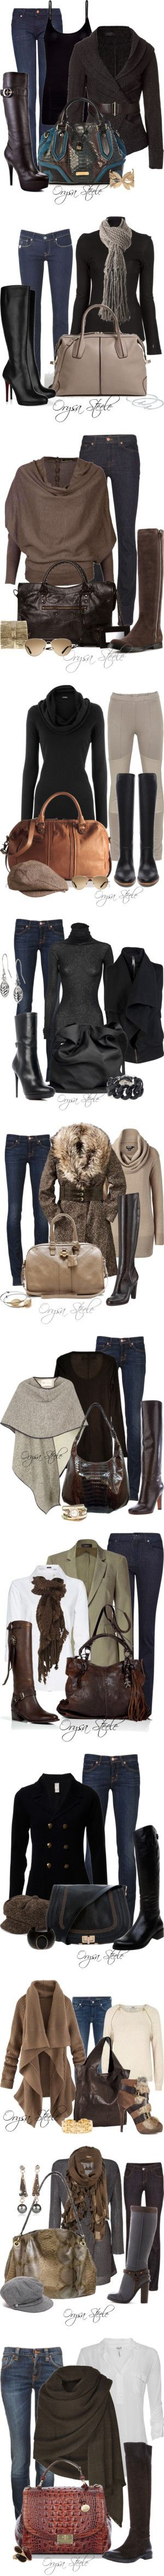 Love fall fashion!: Fall Clothing, Fall Wint, Winter Style, Fall Looks, Winter Outfit, Fall Boots, Fall Fashion, Fall Outfit, Fall Styles